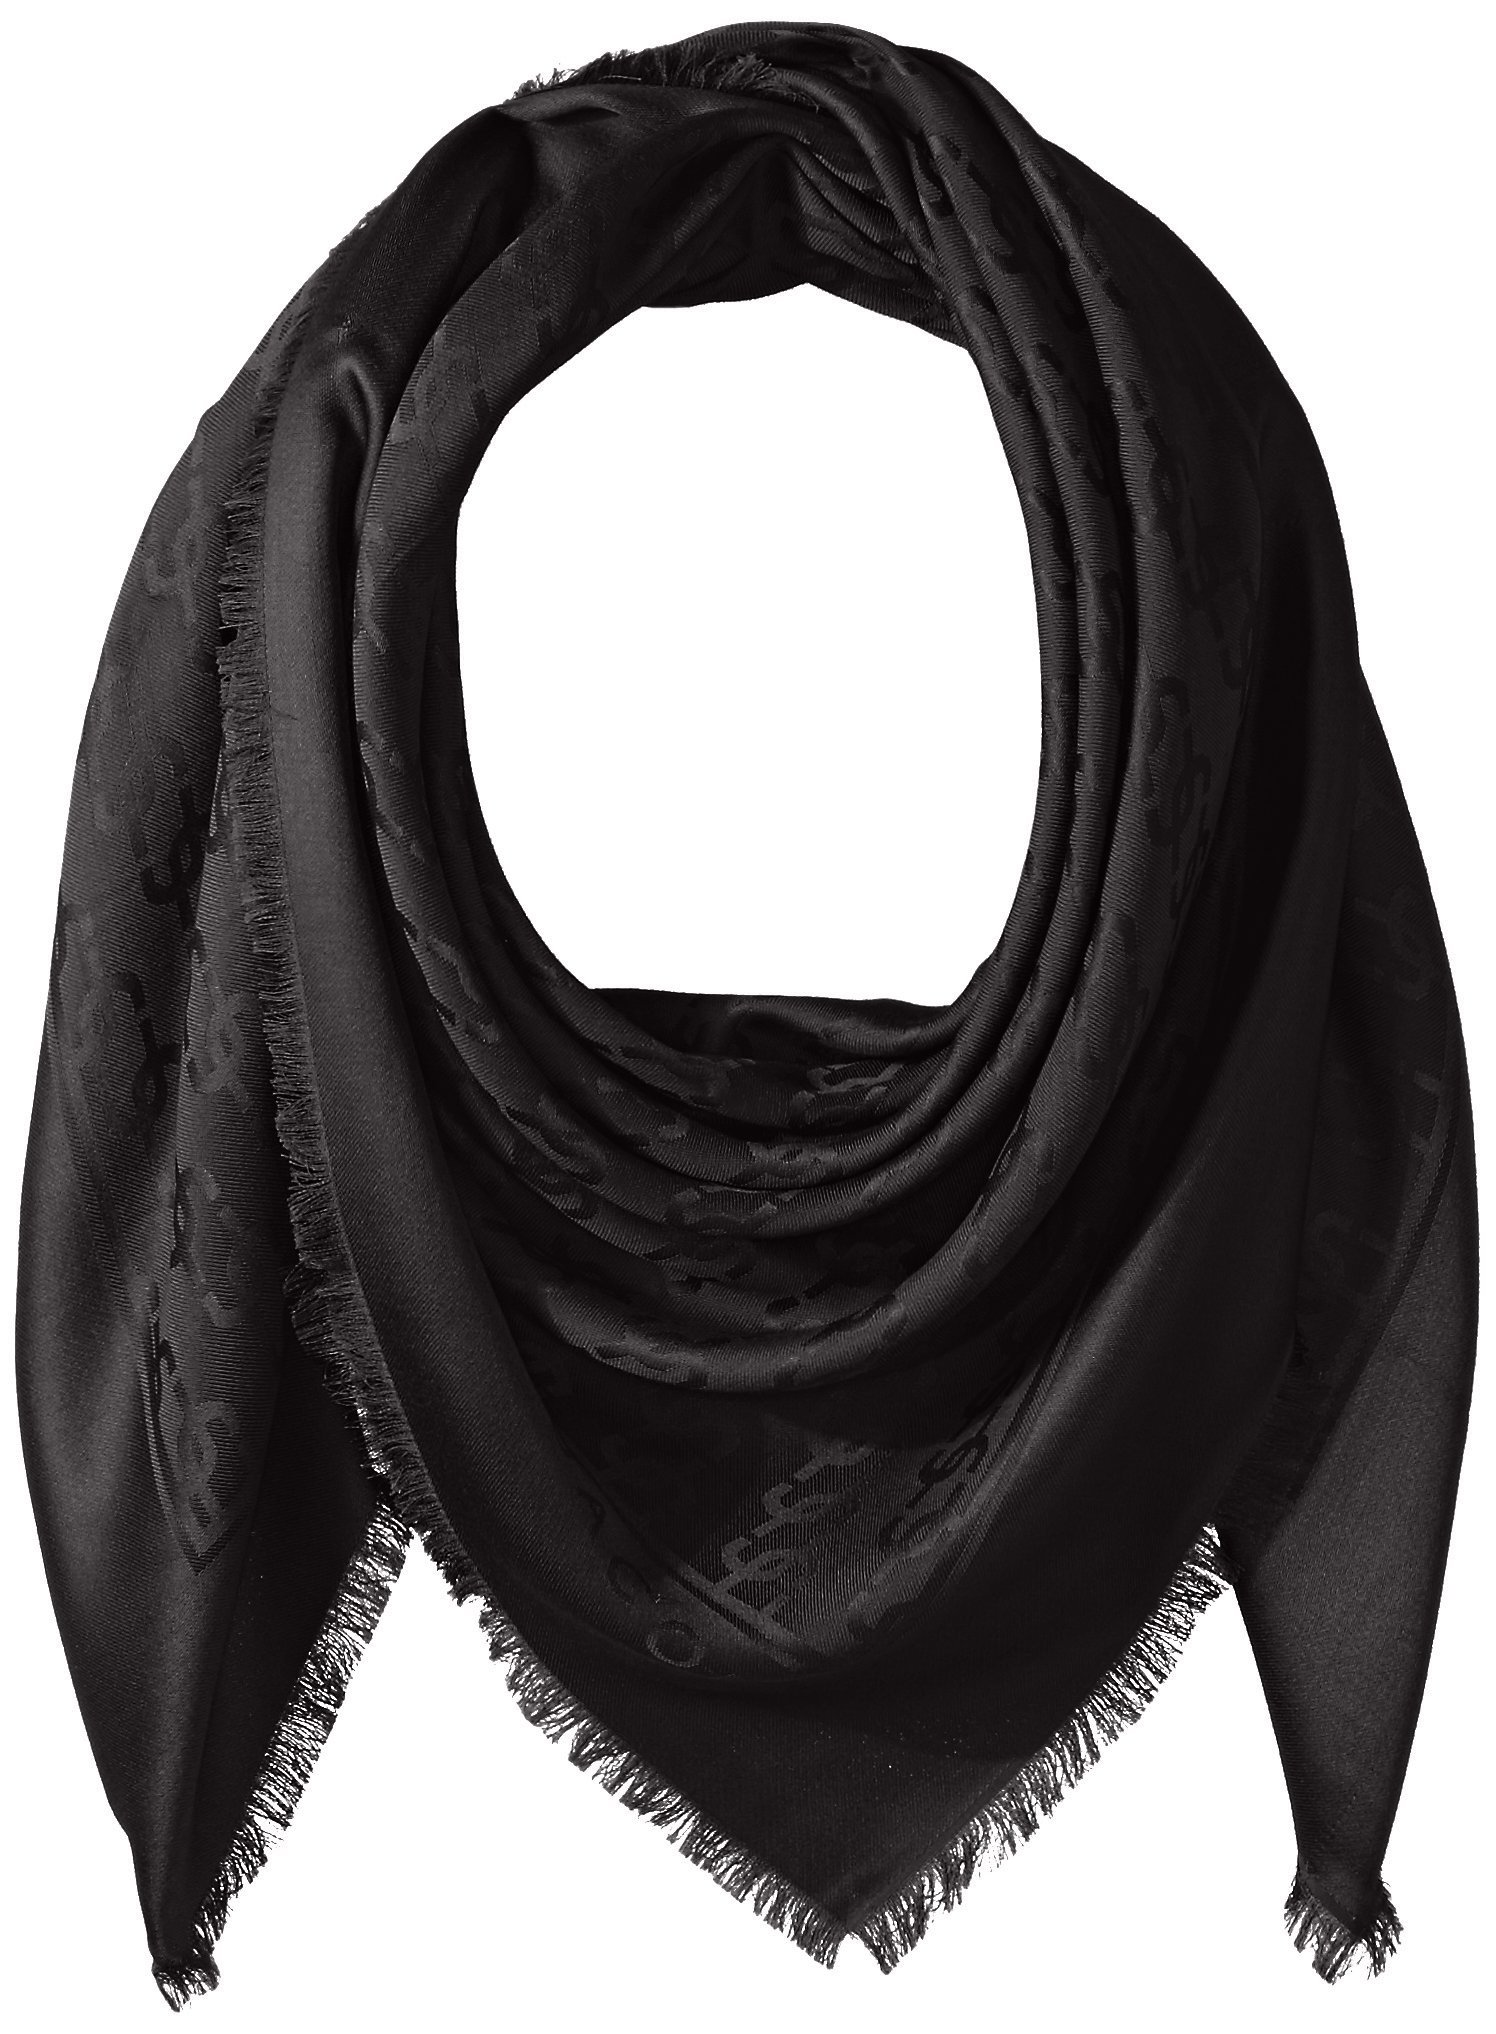 Marc Jacobs Women's Solid Monogram Logo Shawl Black One Size